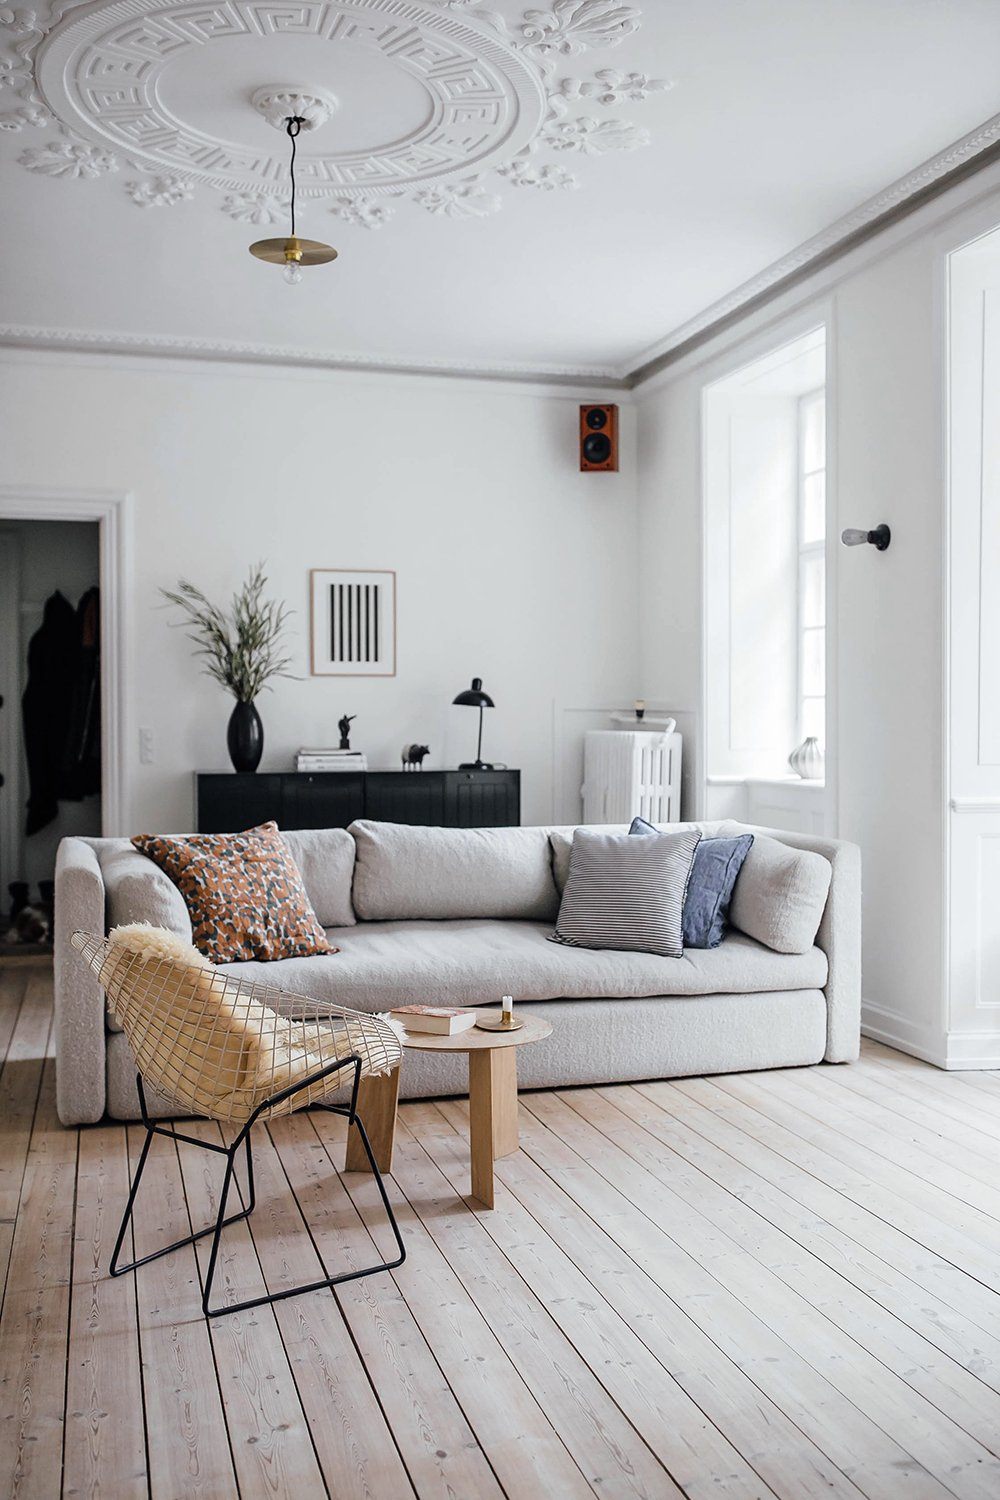 Home Tour with Signe Birkving Bertelsen in Copenhagen